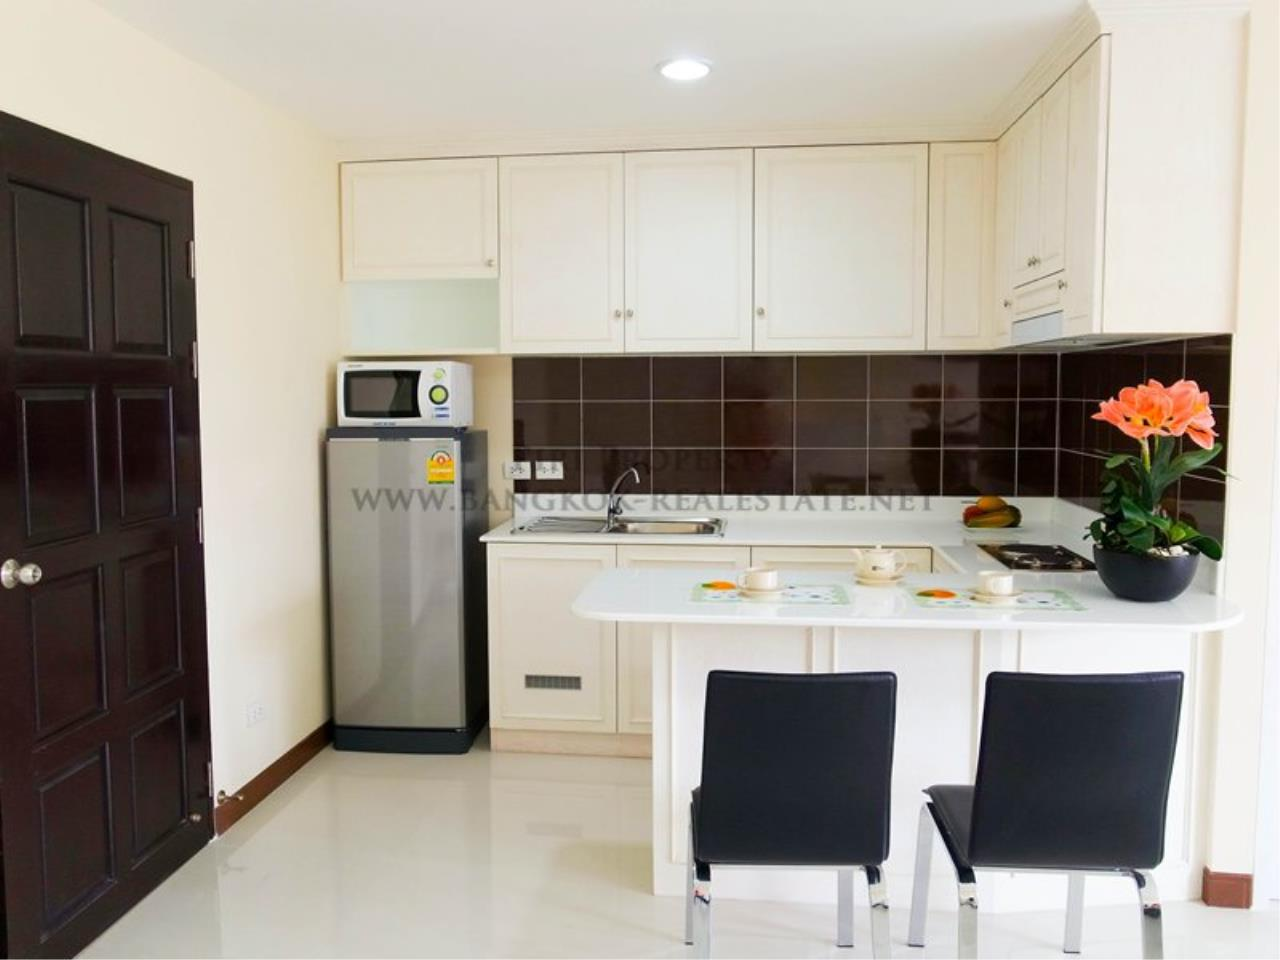 Piri Property Agency's Deluxe Studio Unit in Ekkamai - 36 SQM just a minute away from BigC 3